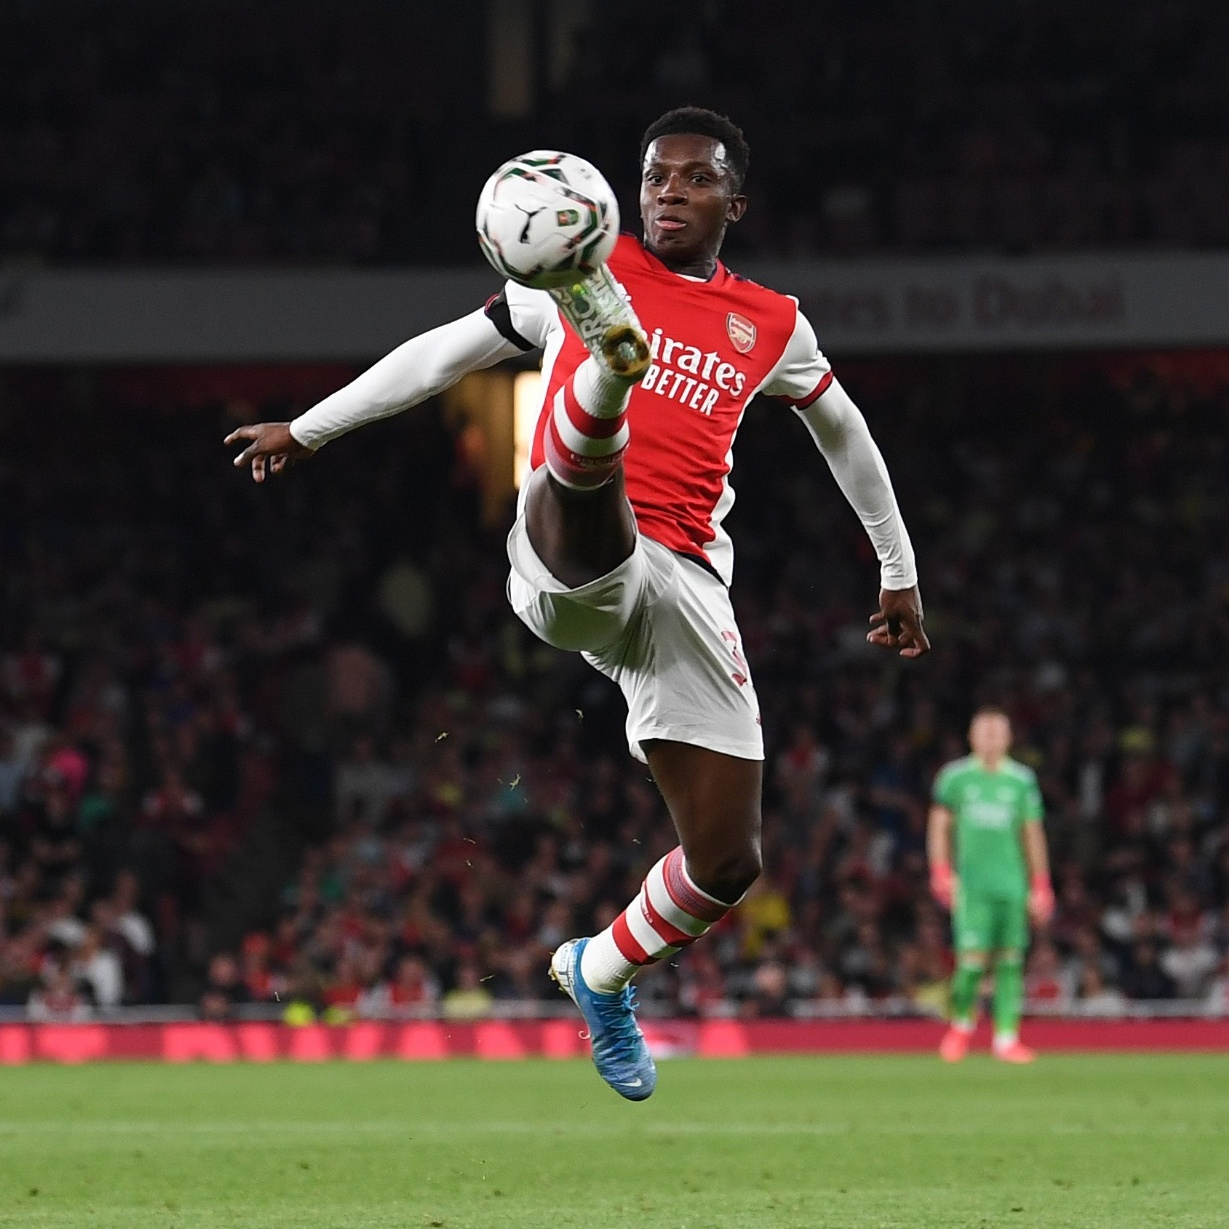 Arsenal - Wimbledon /Carabao Cup - Photo by Arsenal official Tiwtter